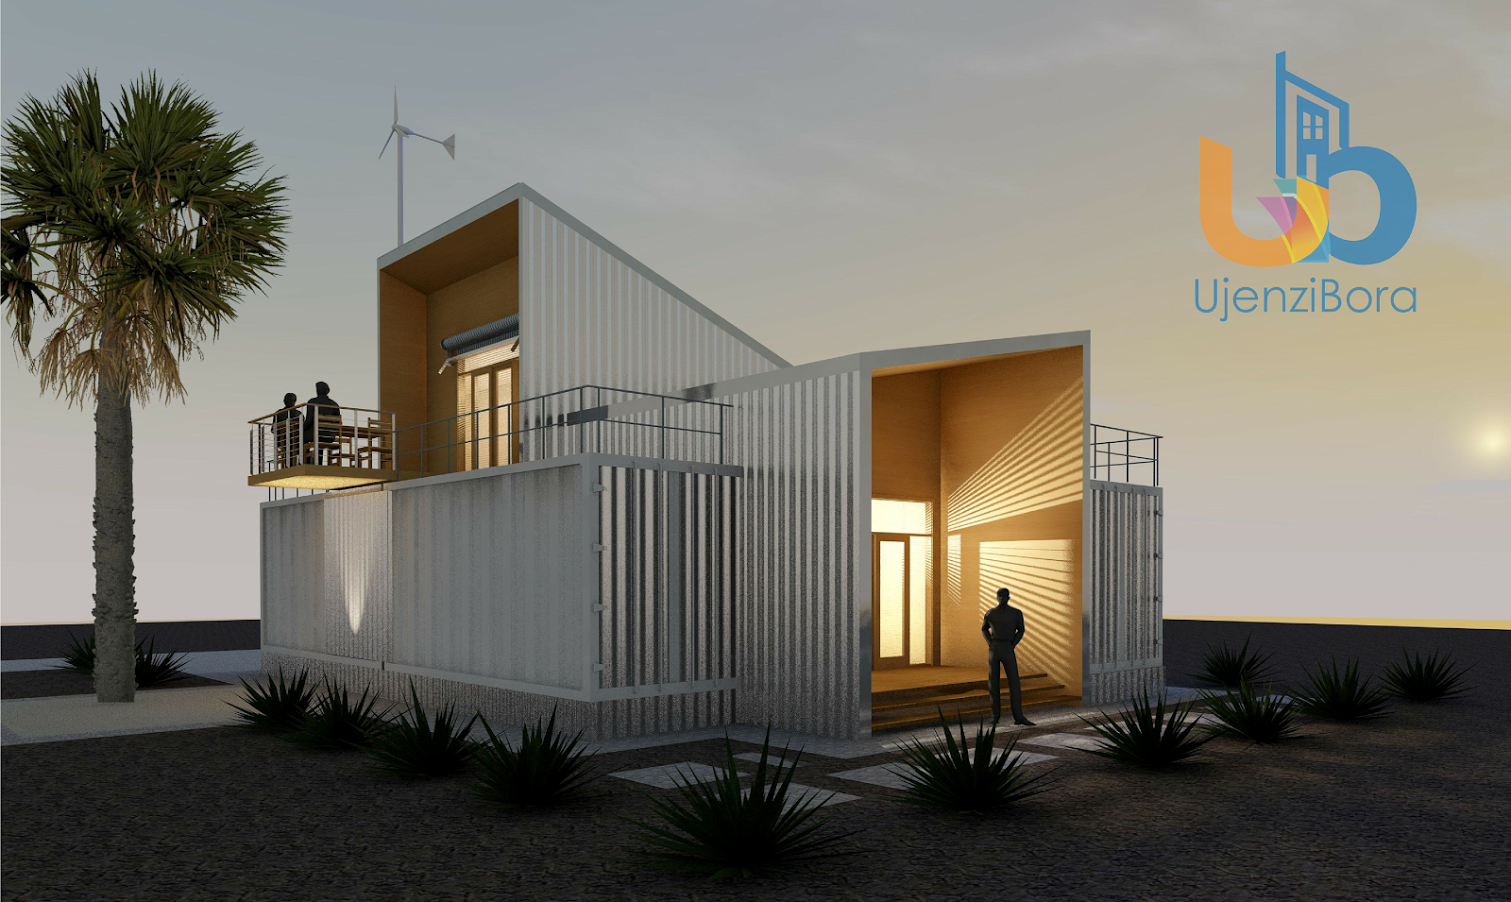 4 Bedroom Shipping Container House 140 Square Metres Ujenzibora